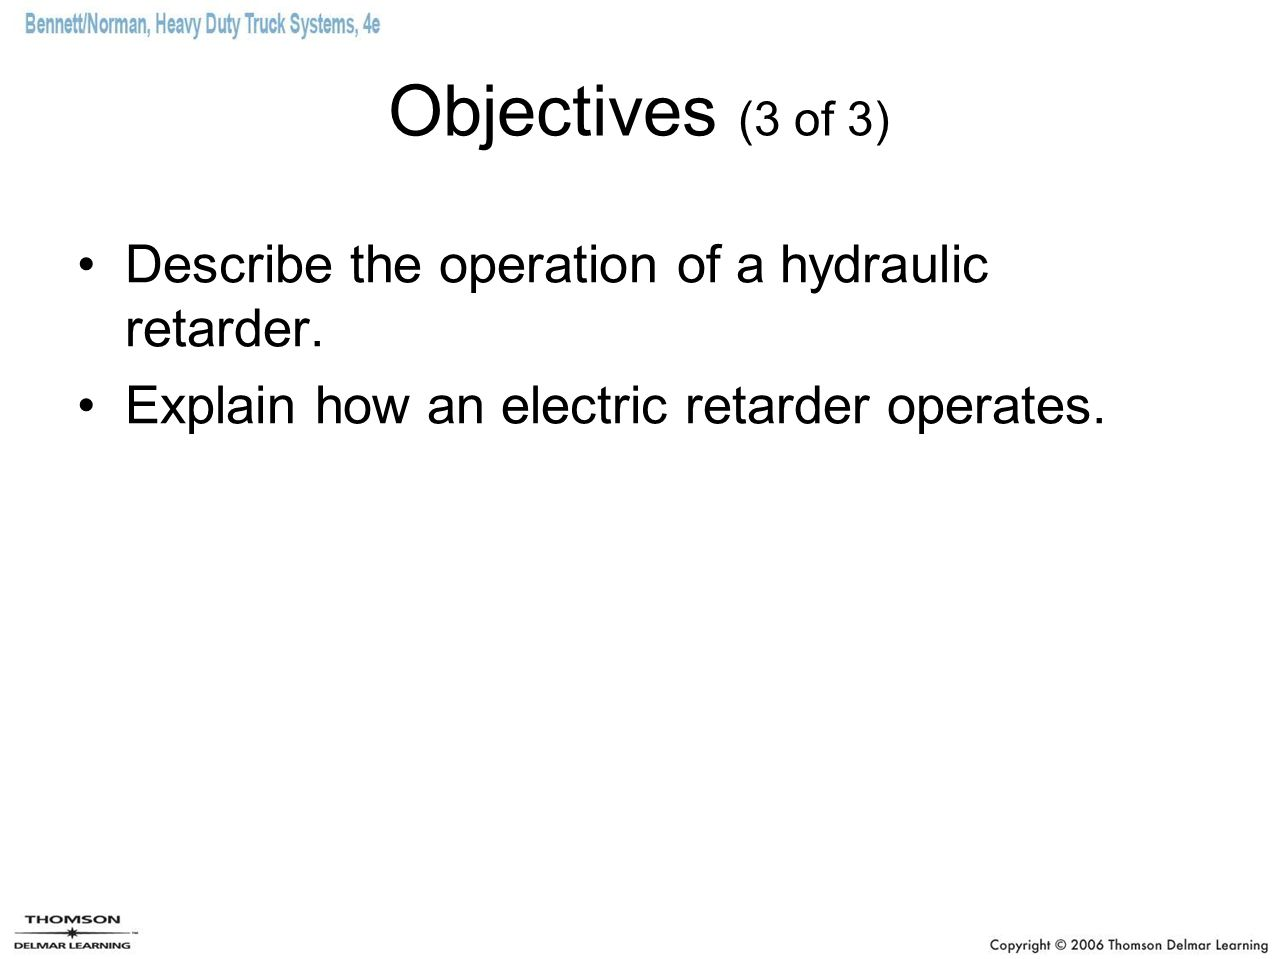 Objectives (3 of 3) Describe the operation of a hydraulic retarder.